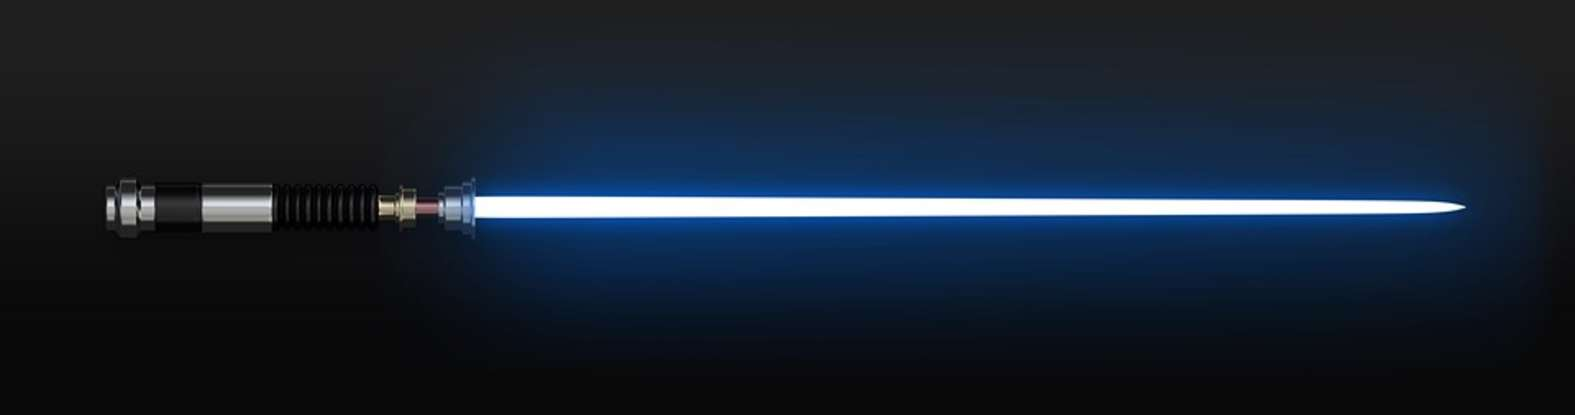 13. Whose lightsaber absorbs Count Dooku